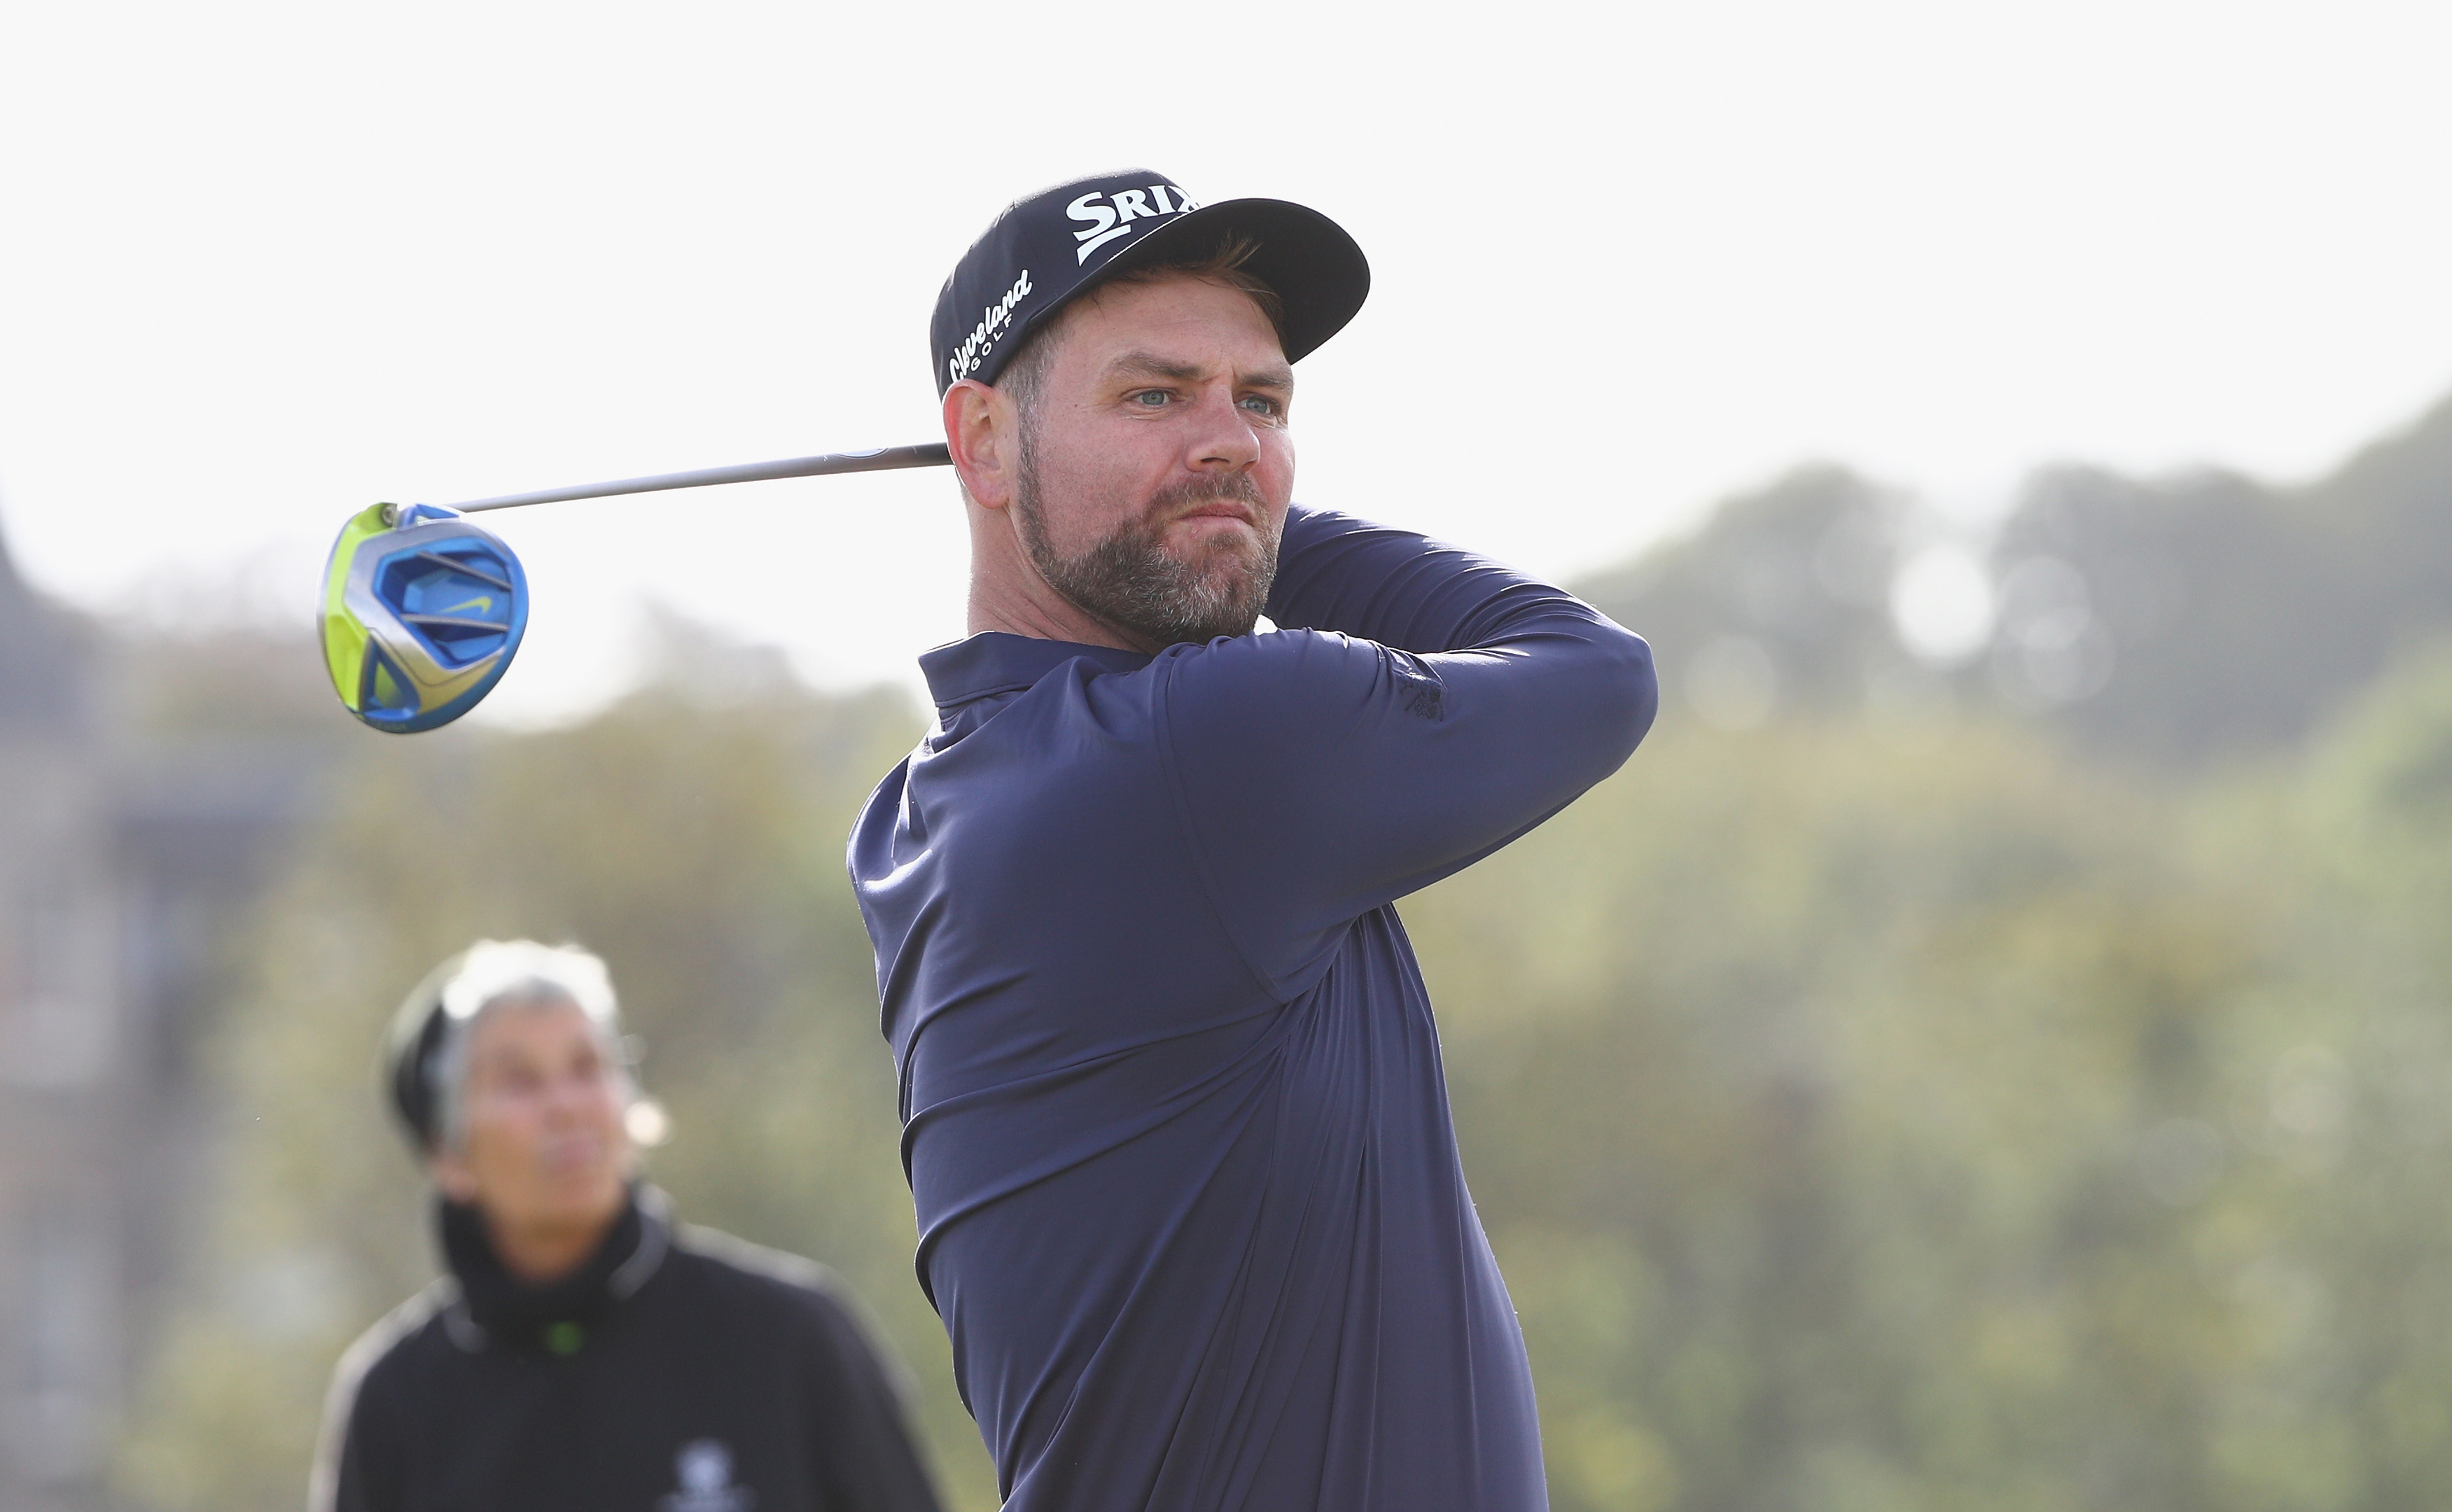 Brian McFadden during a practice round for the Alfred Dunhill Links Championship at Old Course in St Andrews last year